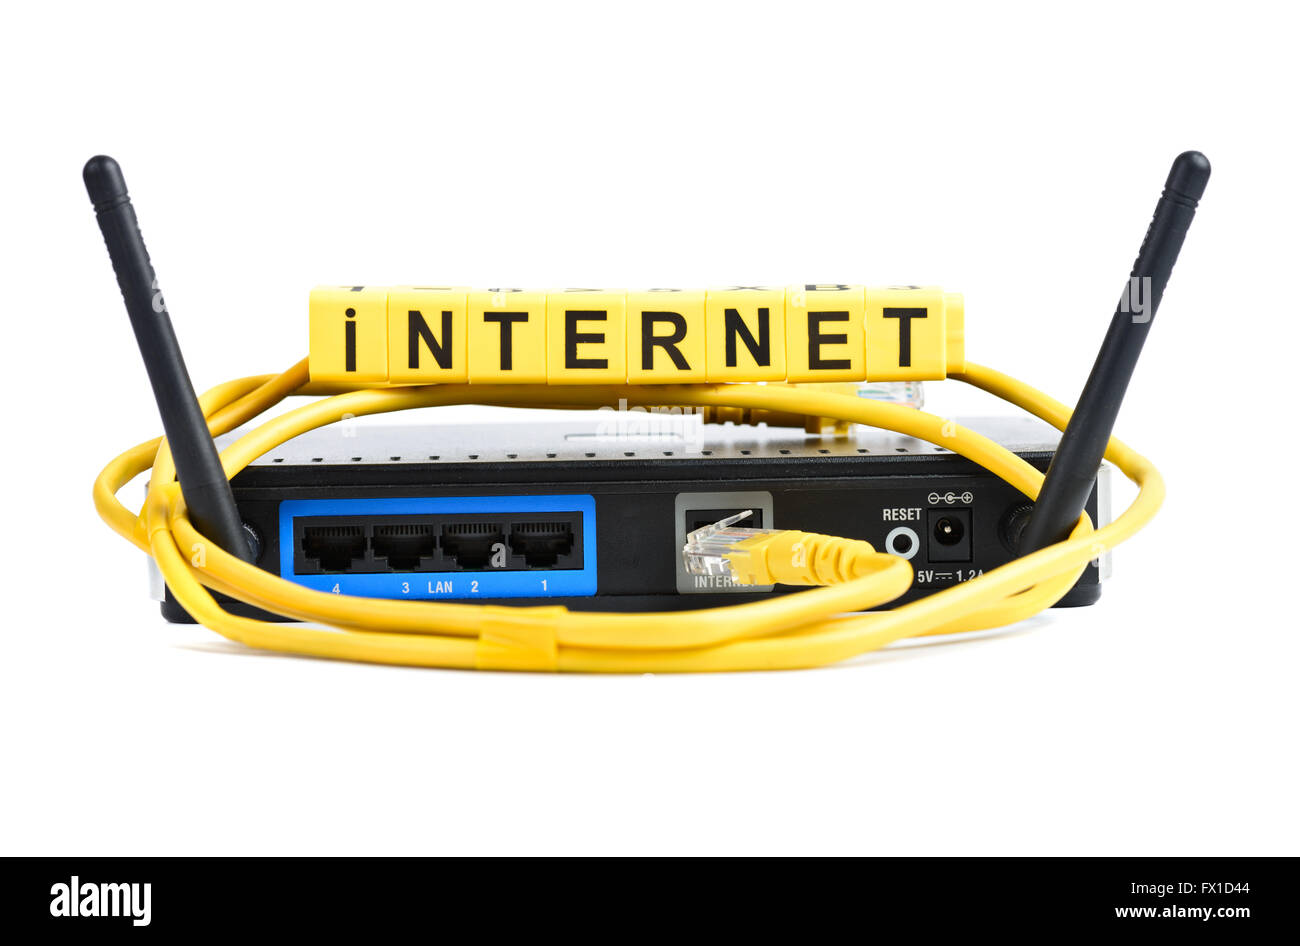 Network yellow cable and router or modem - Stock Image